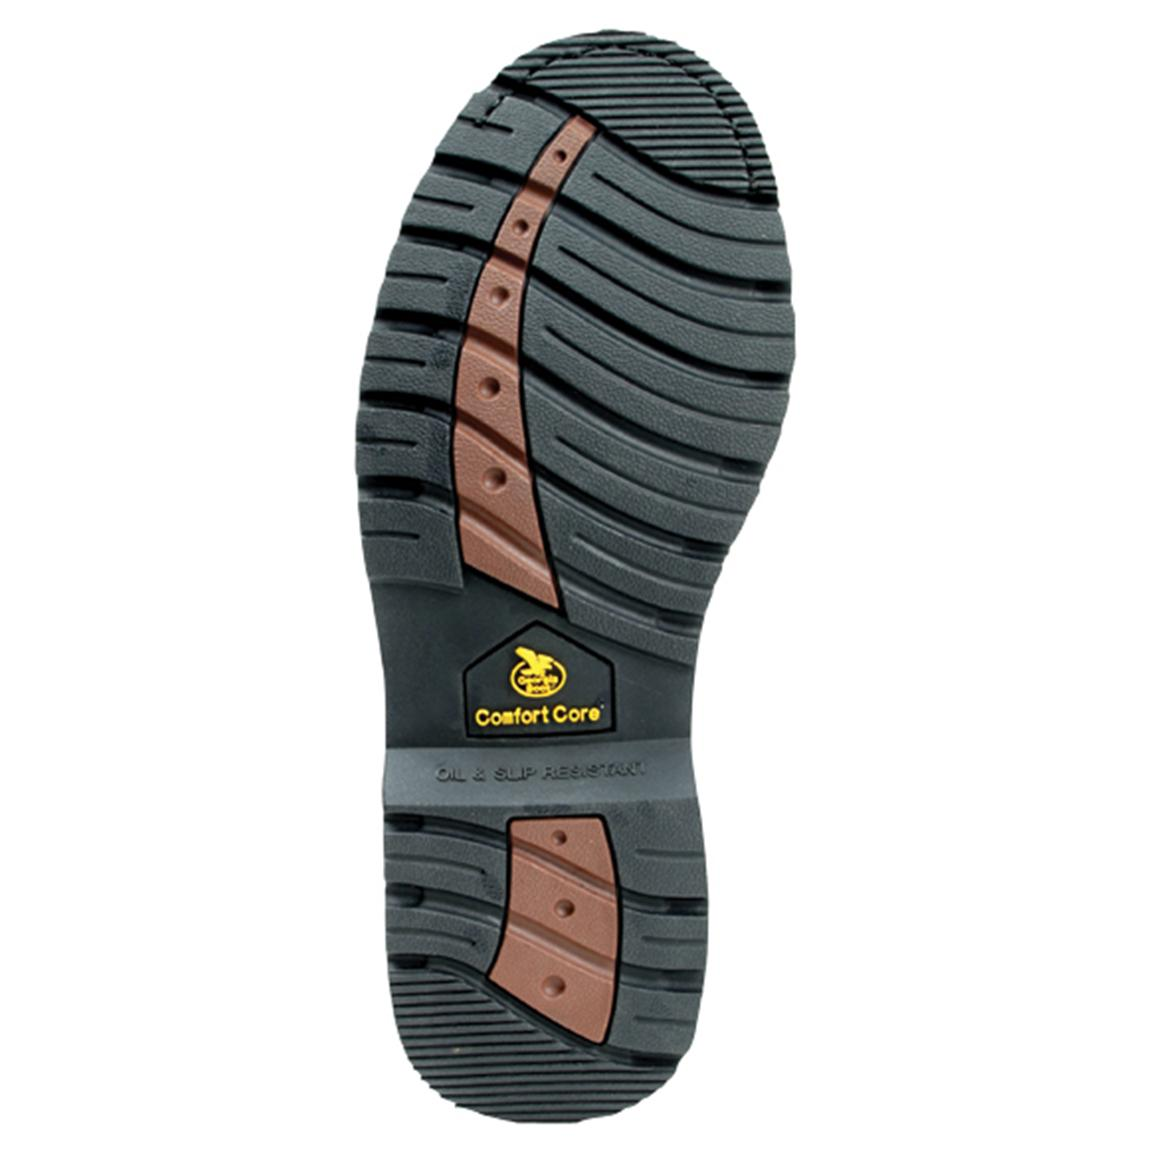 Oil, heat, slip-resistant hammer outsole